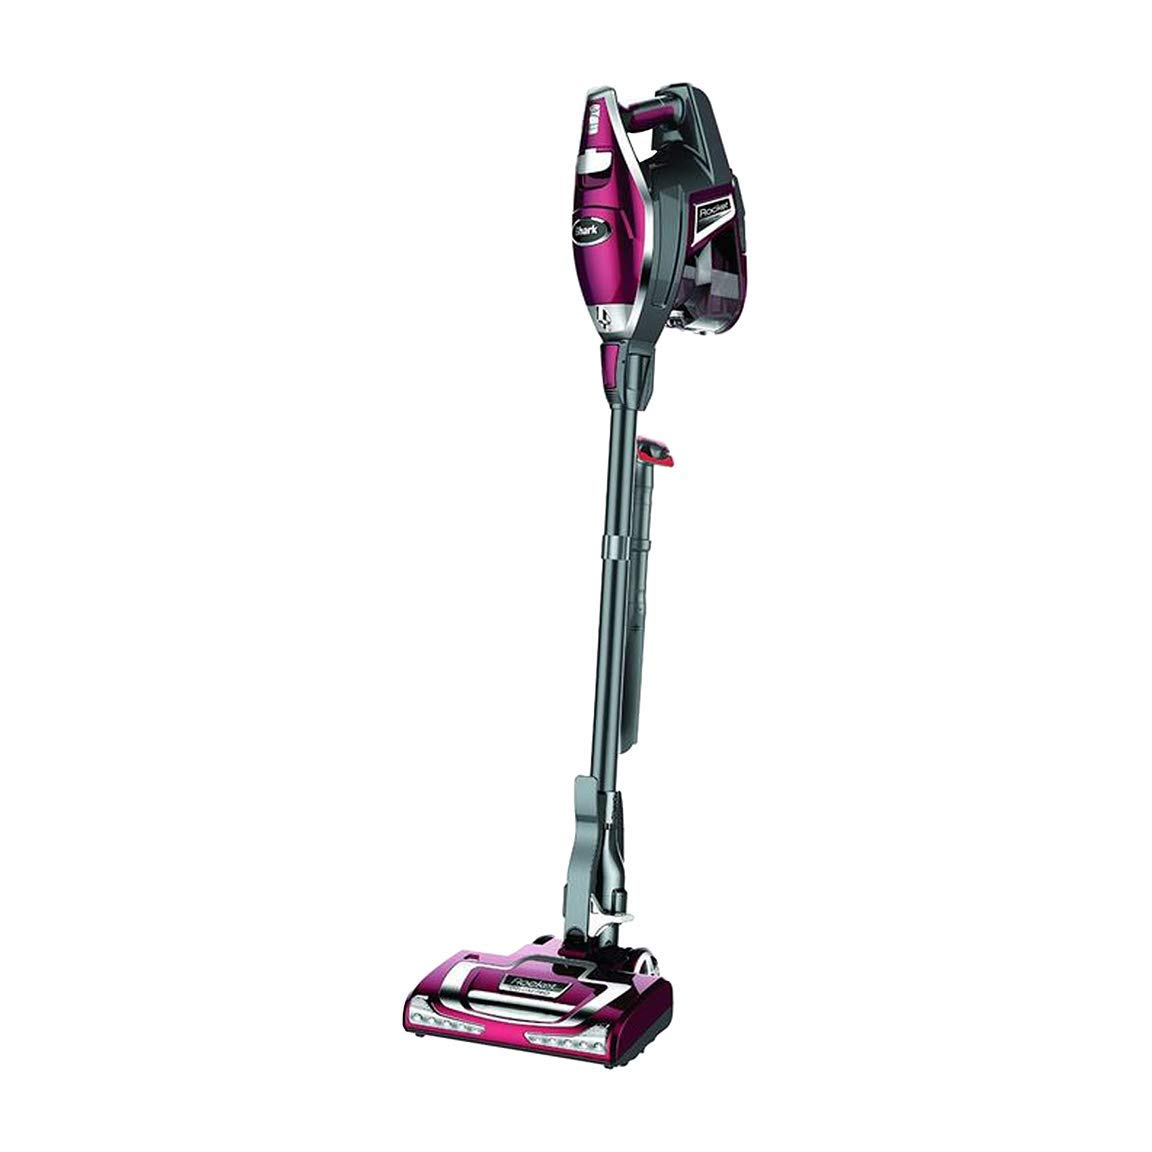 Shark Rocket DeluxePro Ultra-Light Upright Corded Stick Vacuum, Bordeaux (Renewed)